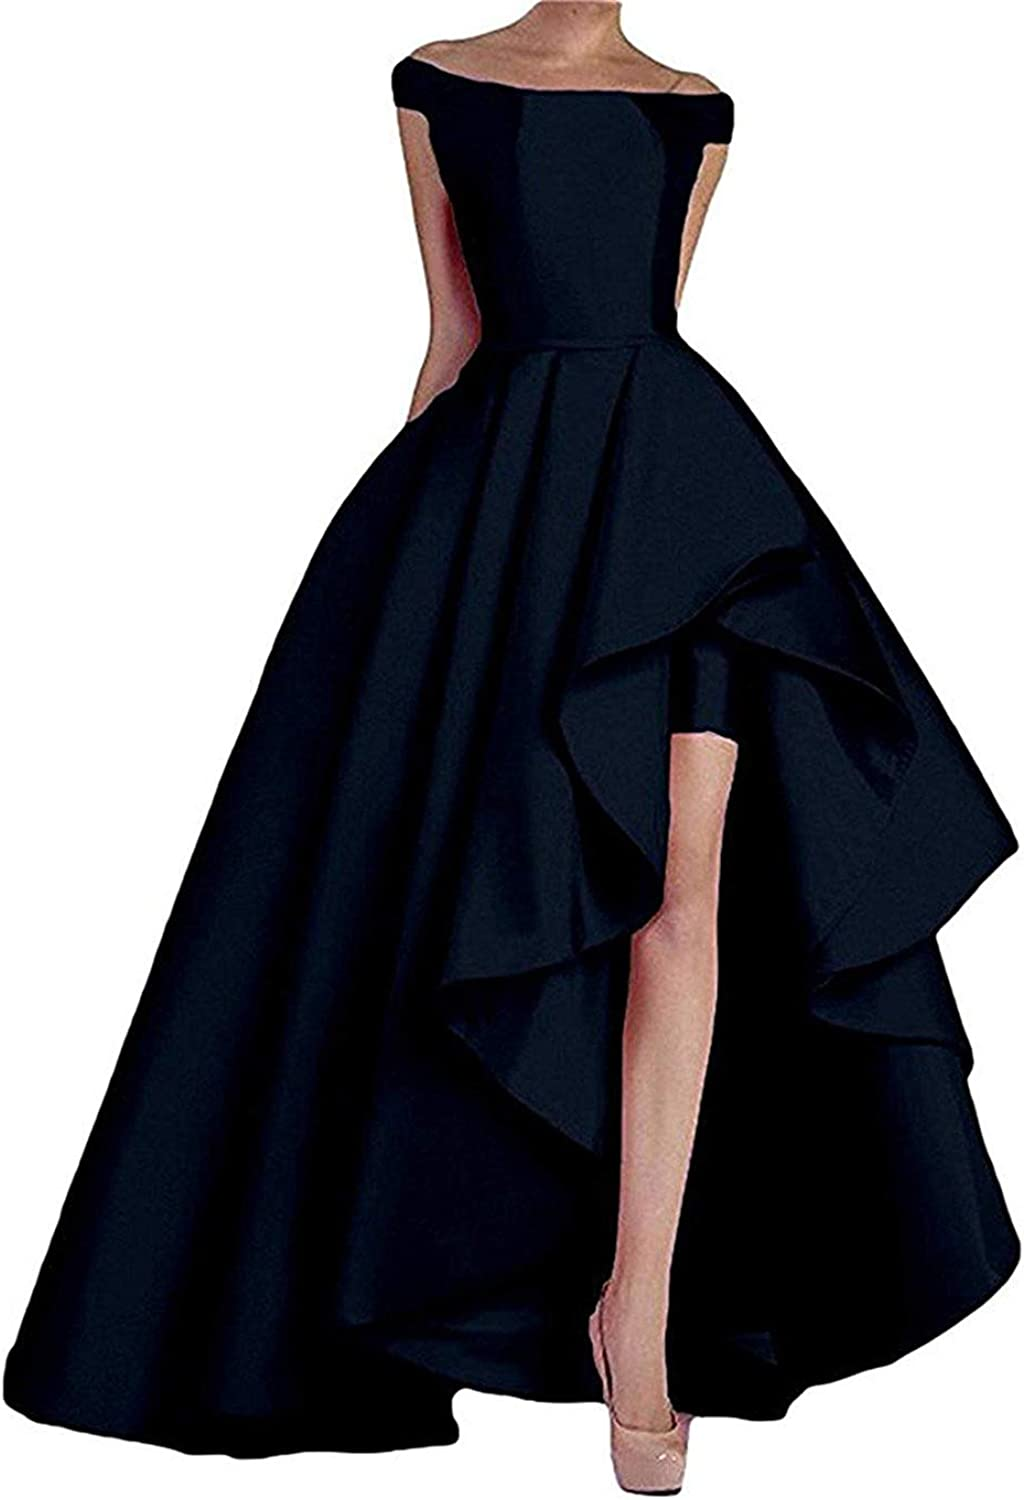 WHZZ Women's High Low Off The Shoulder Prom Dresses Long Satin Formal Evening Gowns